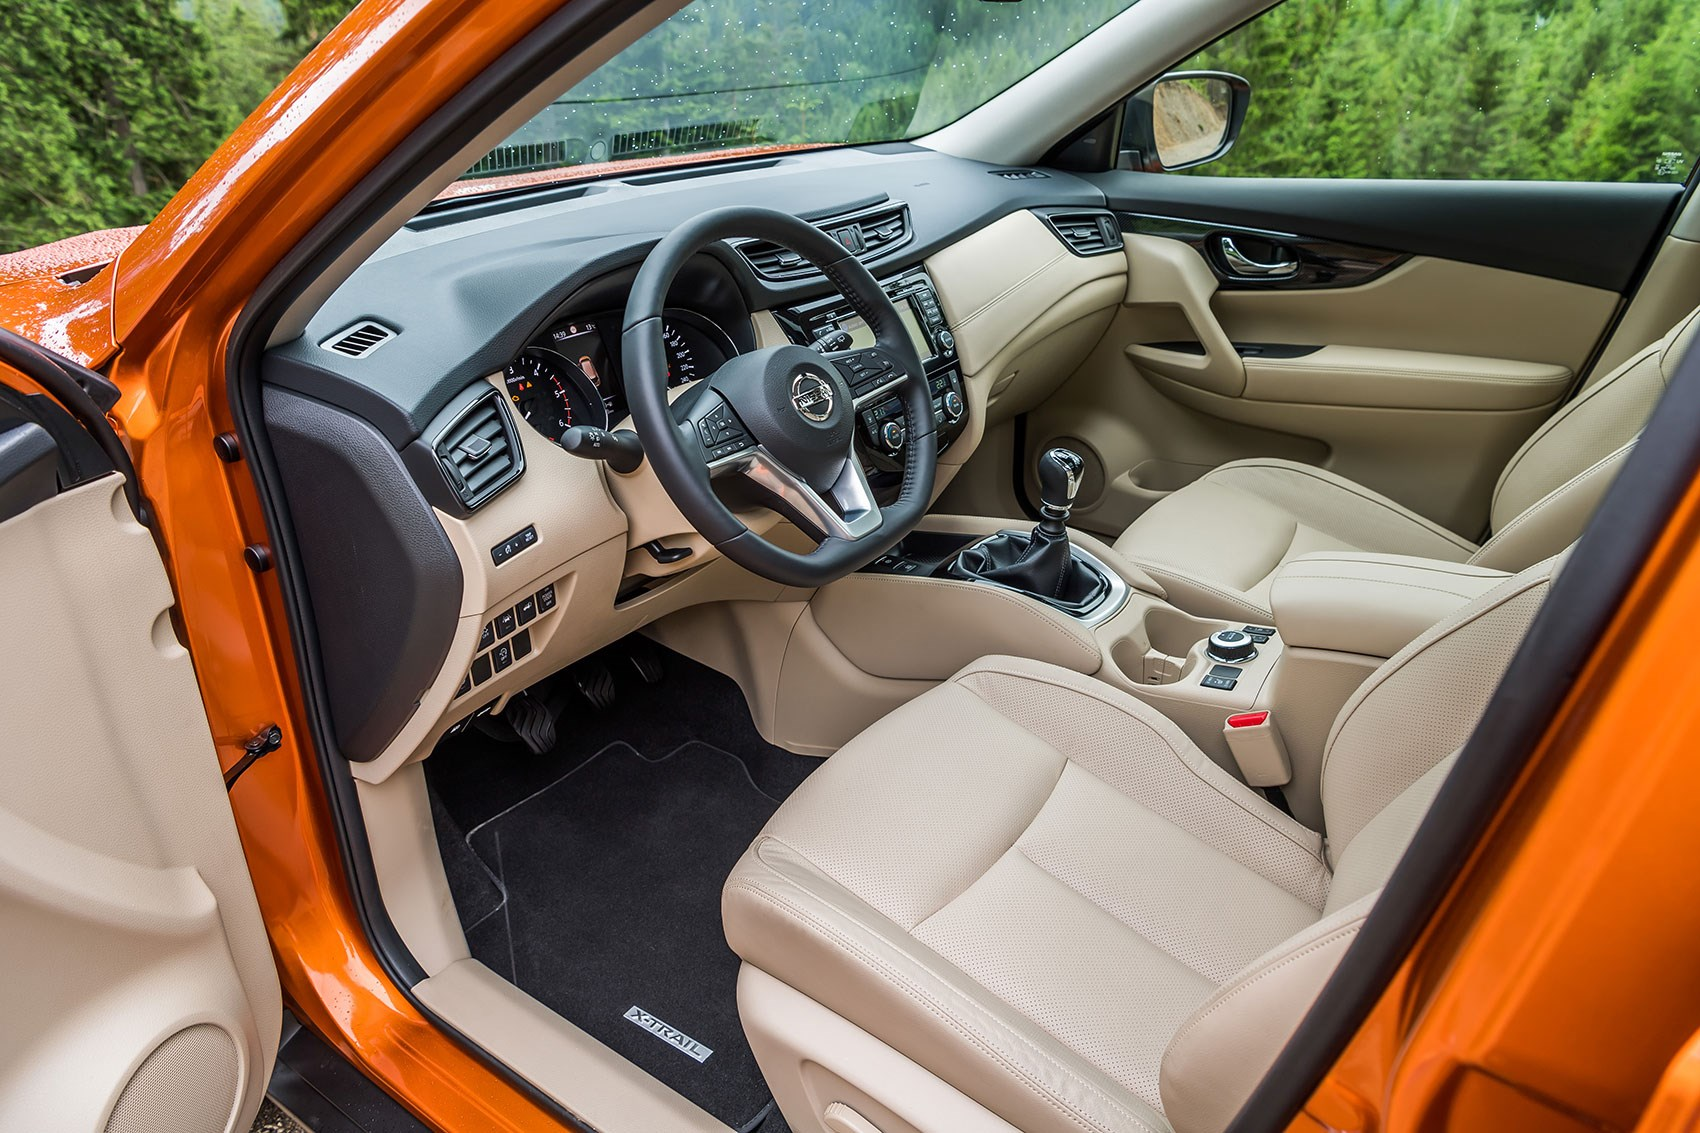 Nissan X-Trail interior: a tough cabin with clever tech features